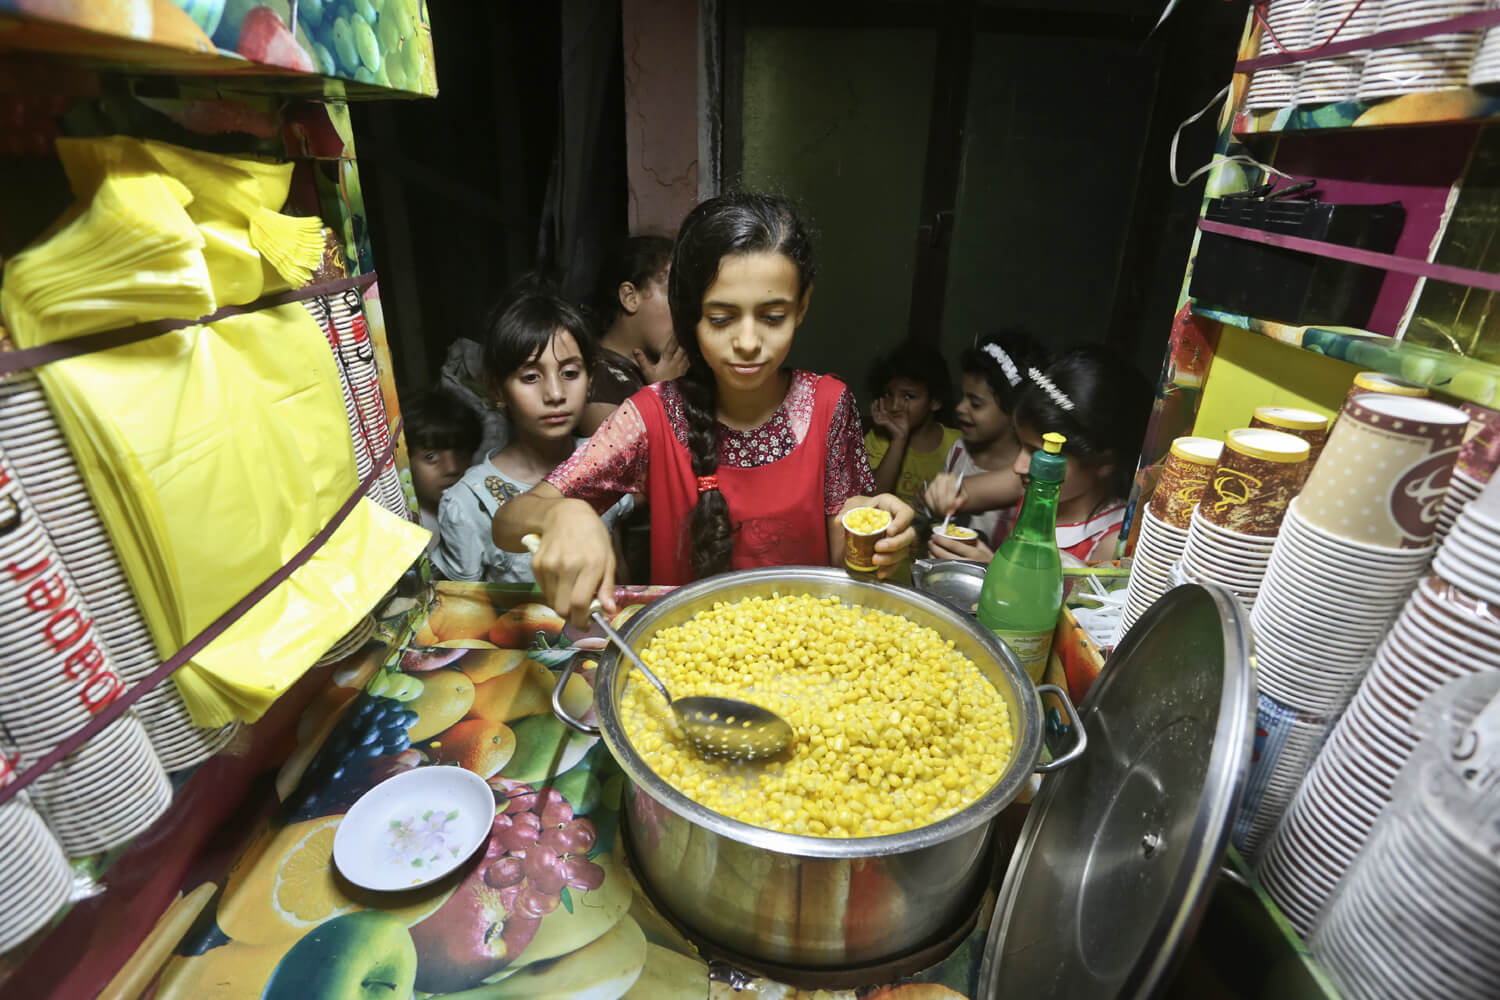 Mervit Baker, 12, sells cups of buttered corn in front of her house in the Al- Zaytoon area, Gaza, June 27, 2016. (Photo: Mohammed Asad)